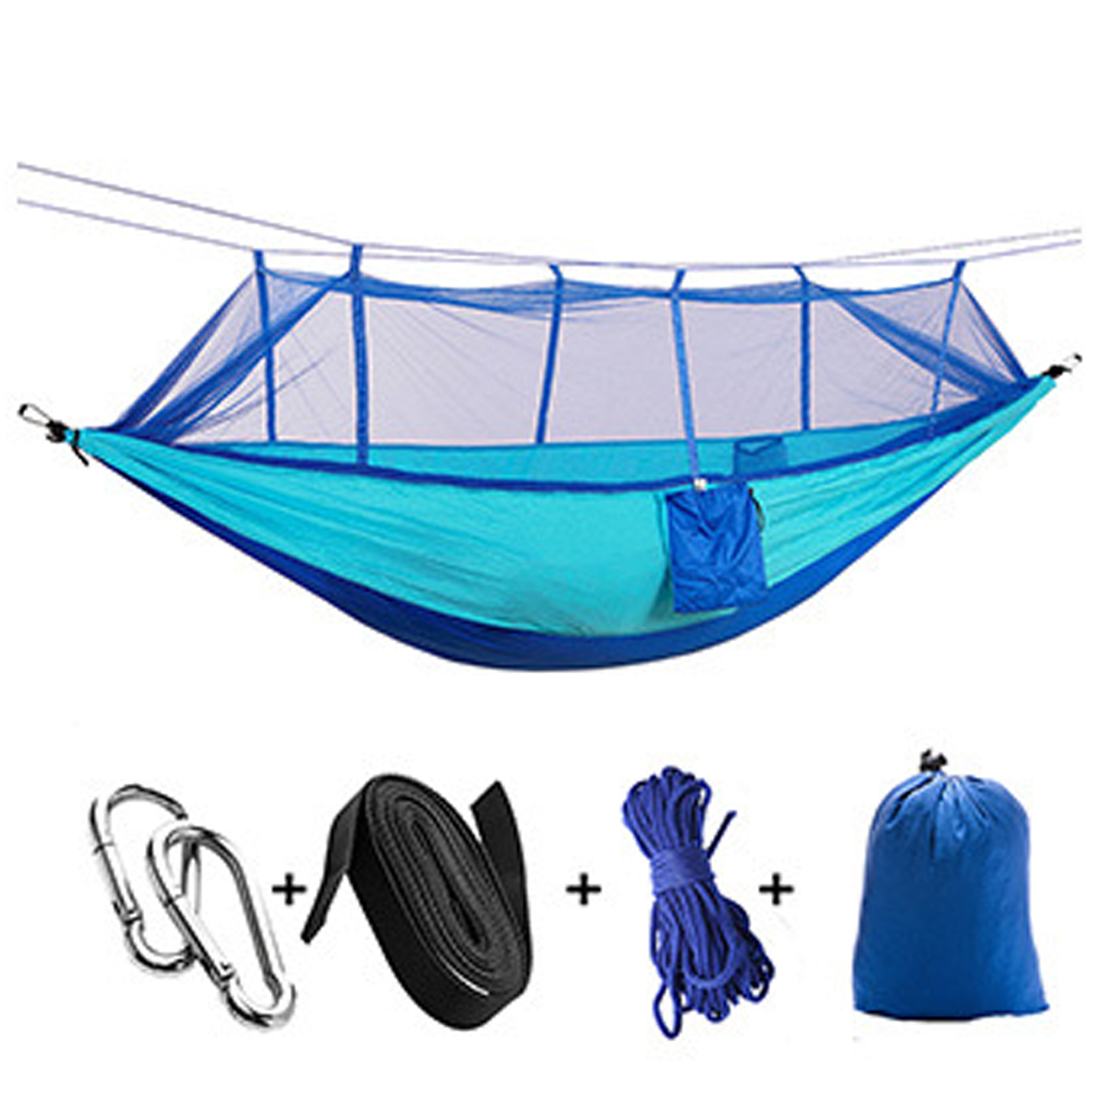 Cheap Sale 2.6*1.4m 2 Person Outdoor Camping High Strength Nylon Parachute Hanging Bed With Mosquito Net Anti Mosquito Sleeping Bag Hammock Sleeping Bags